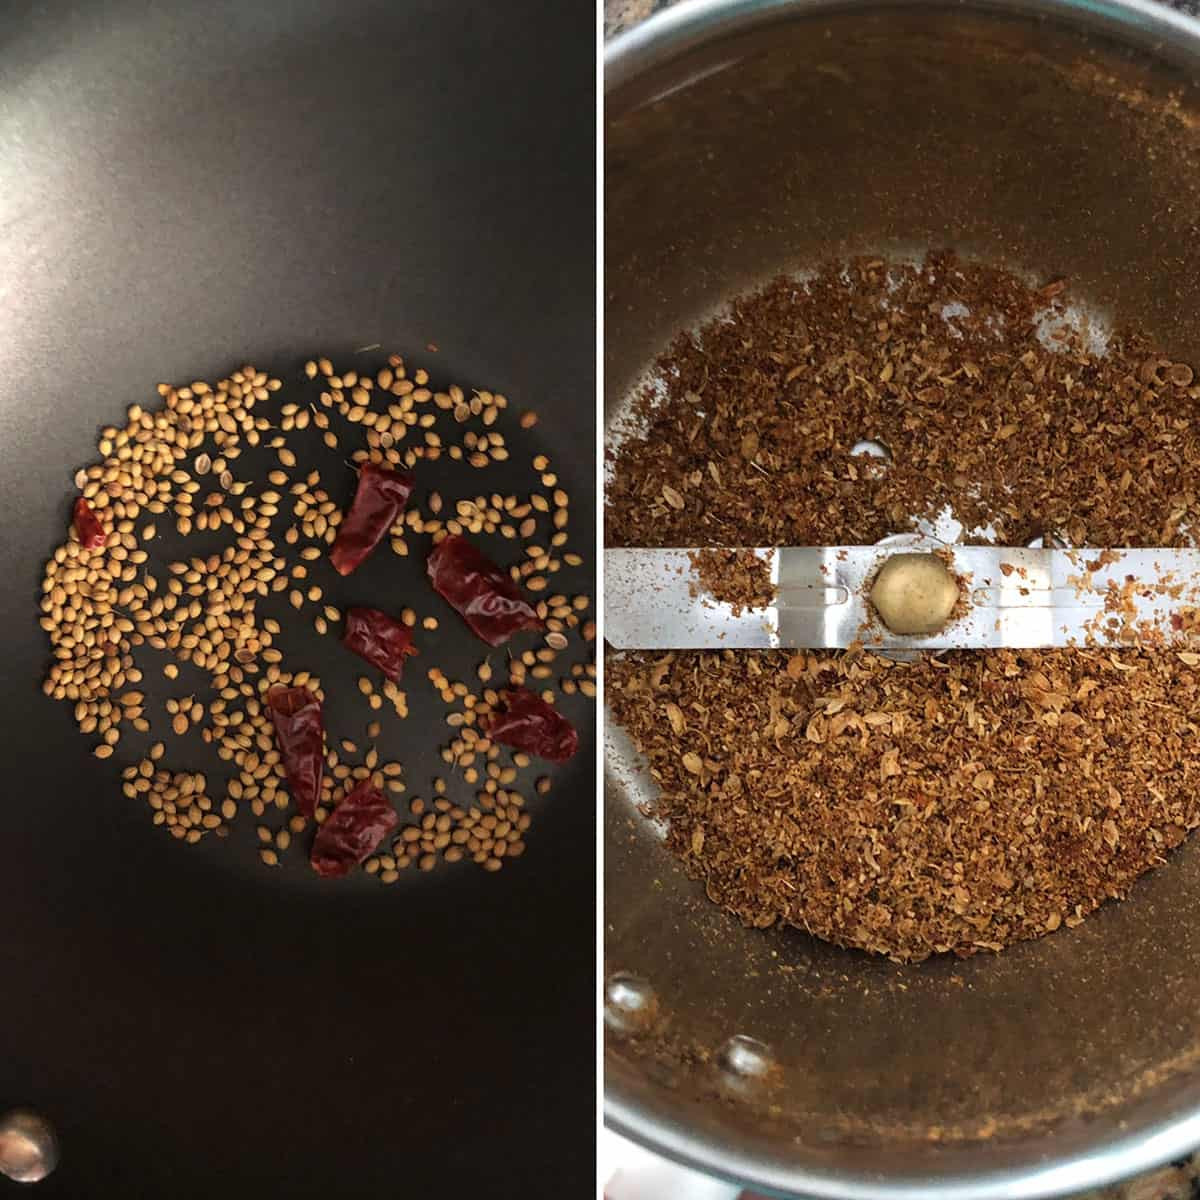 Toasted spices ground to a coarse powder